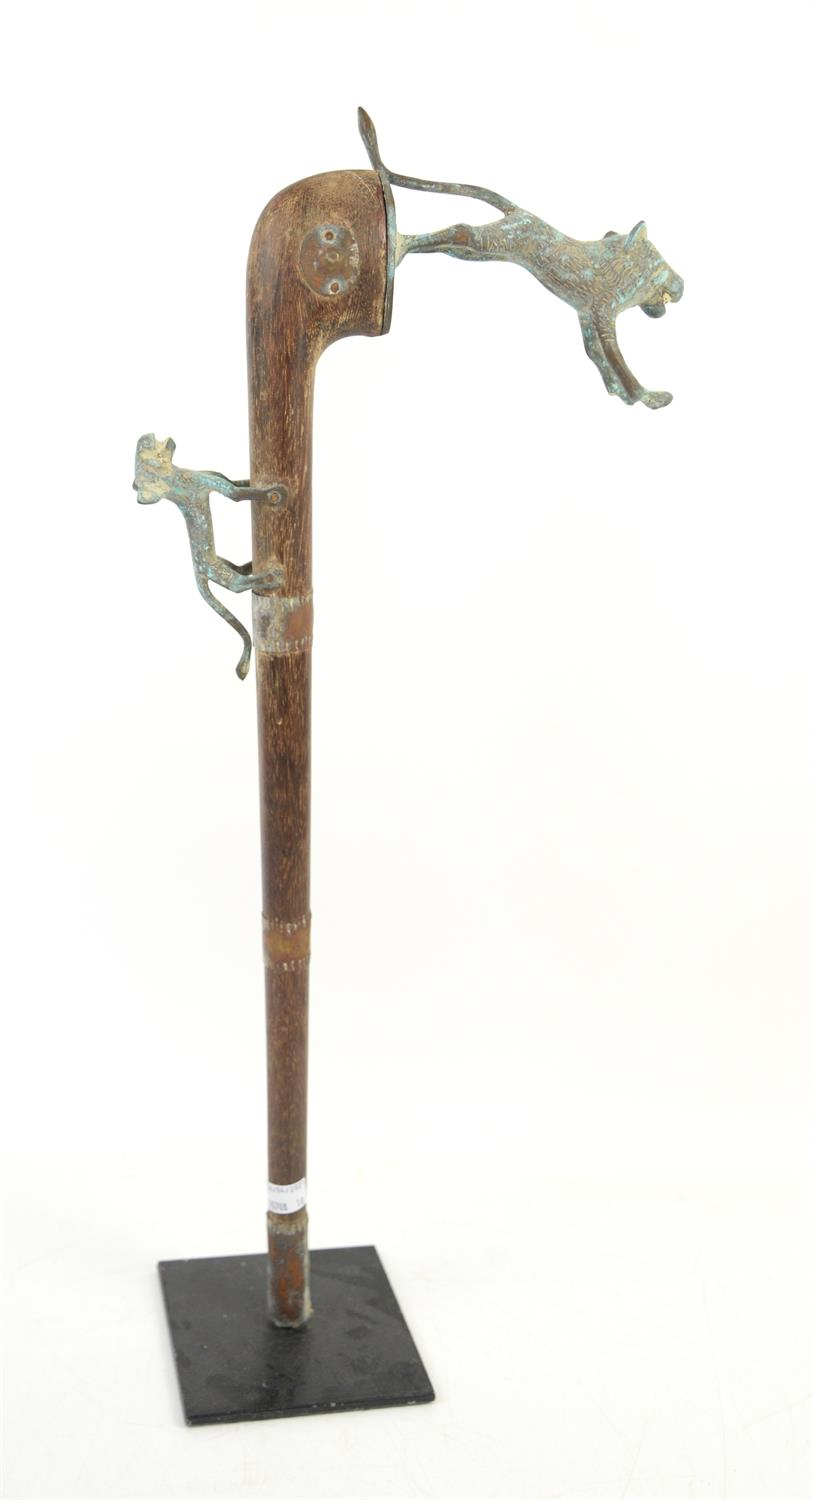 African tribal sceptre, wooden shaft with metal mounted wild dogs and metal strips, on stand, H61cm